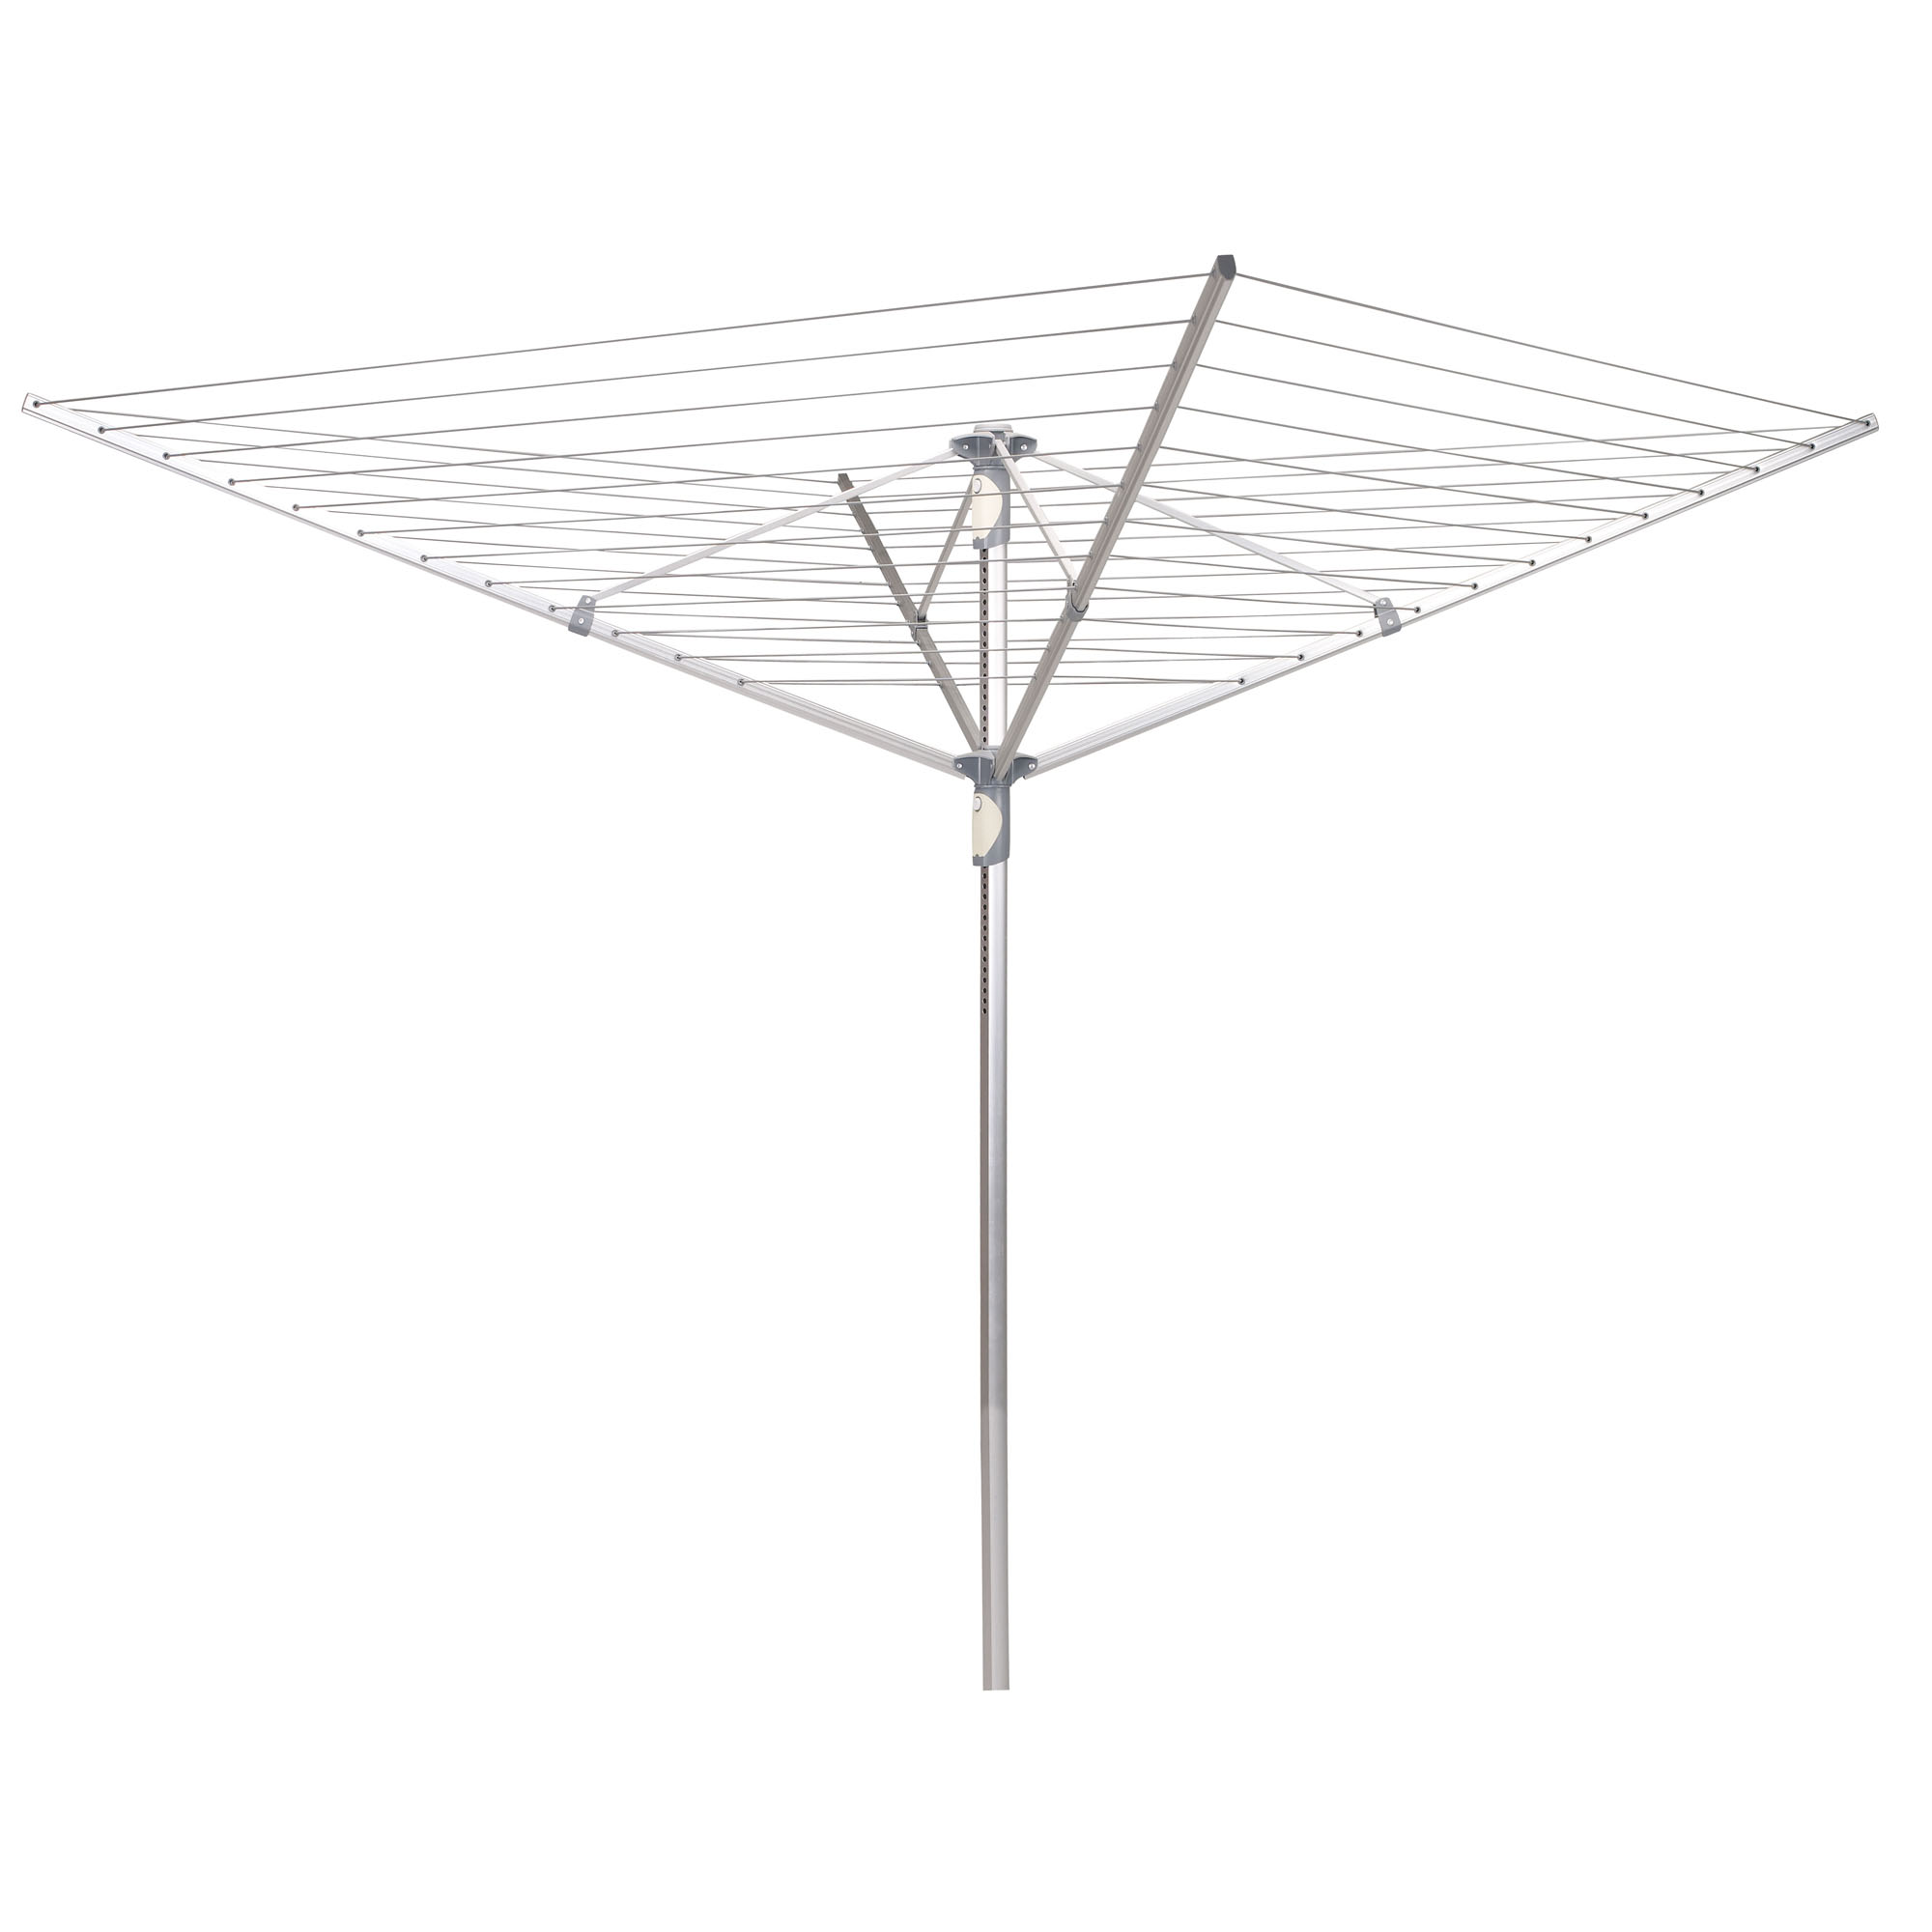 Outdoor Umbrella Dryer - Aluminum